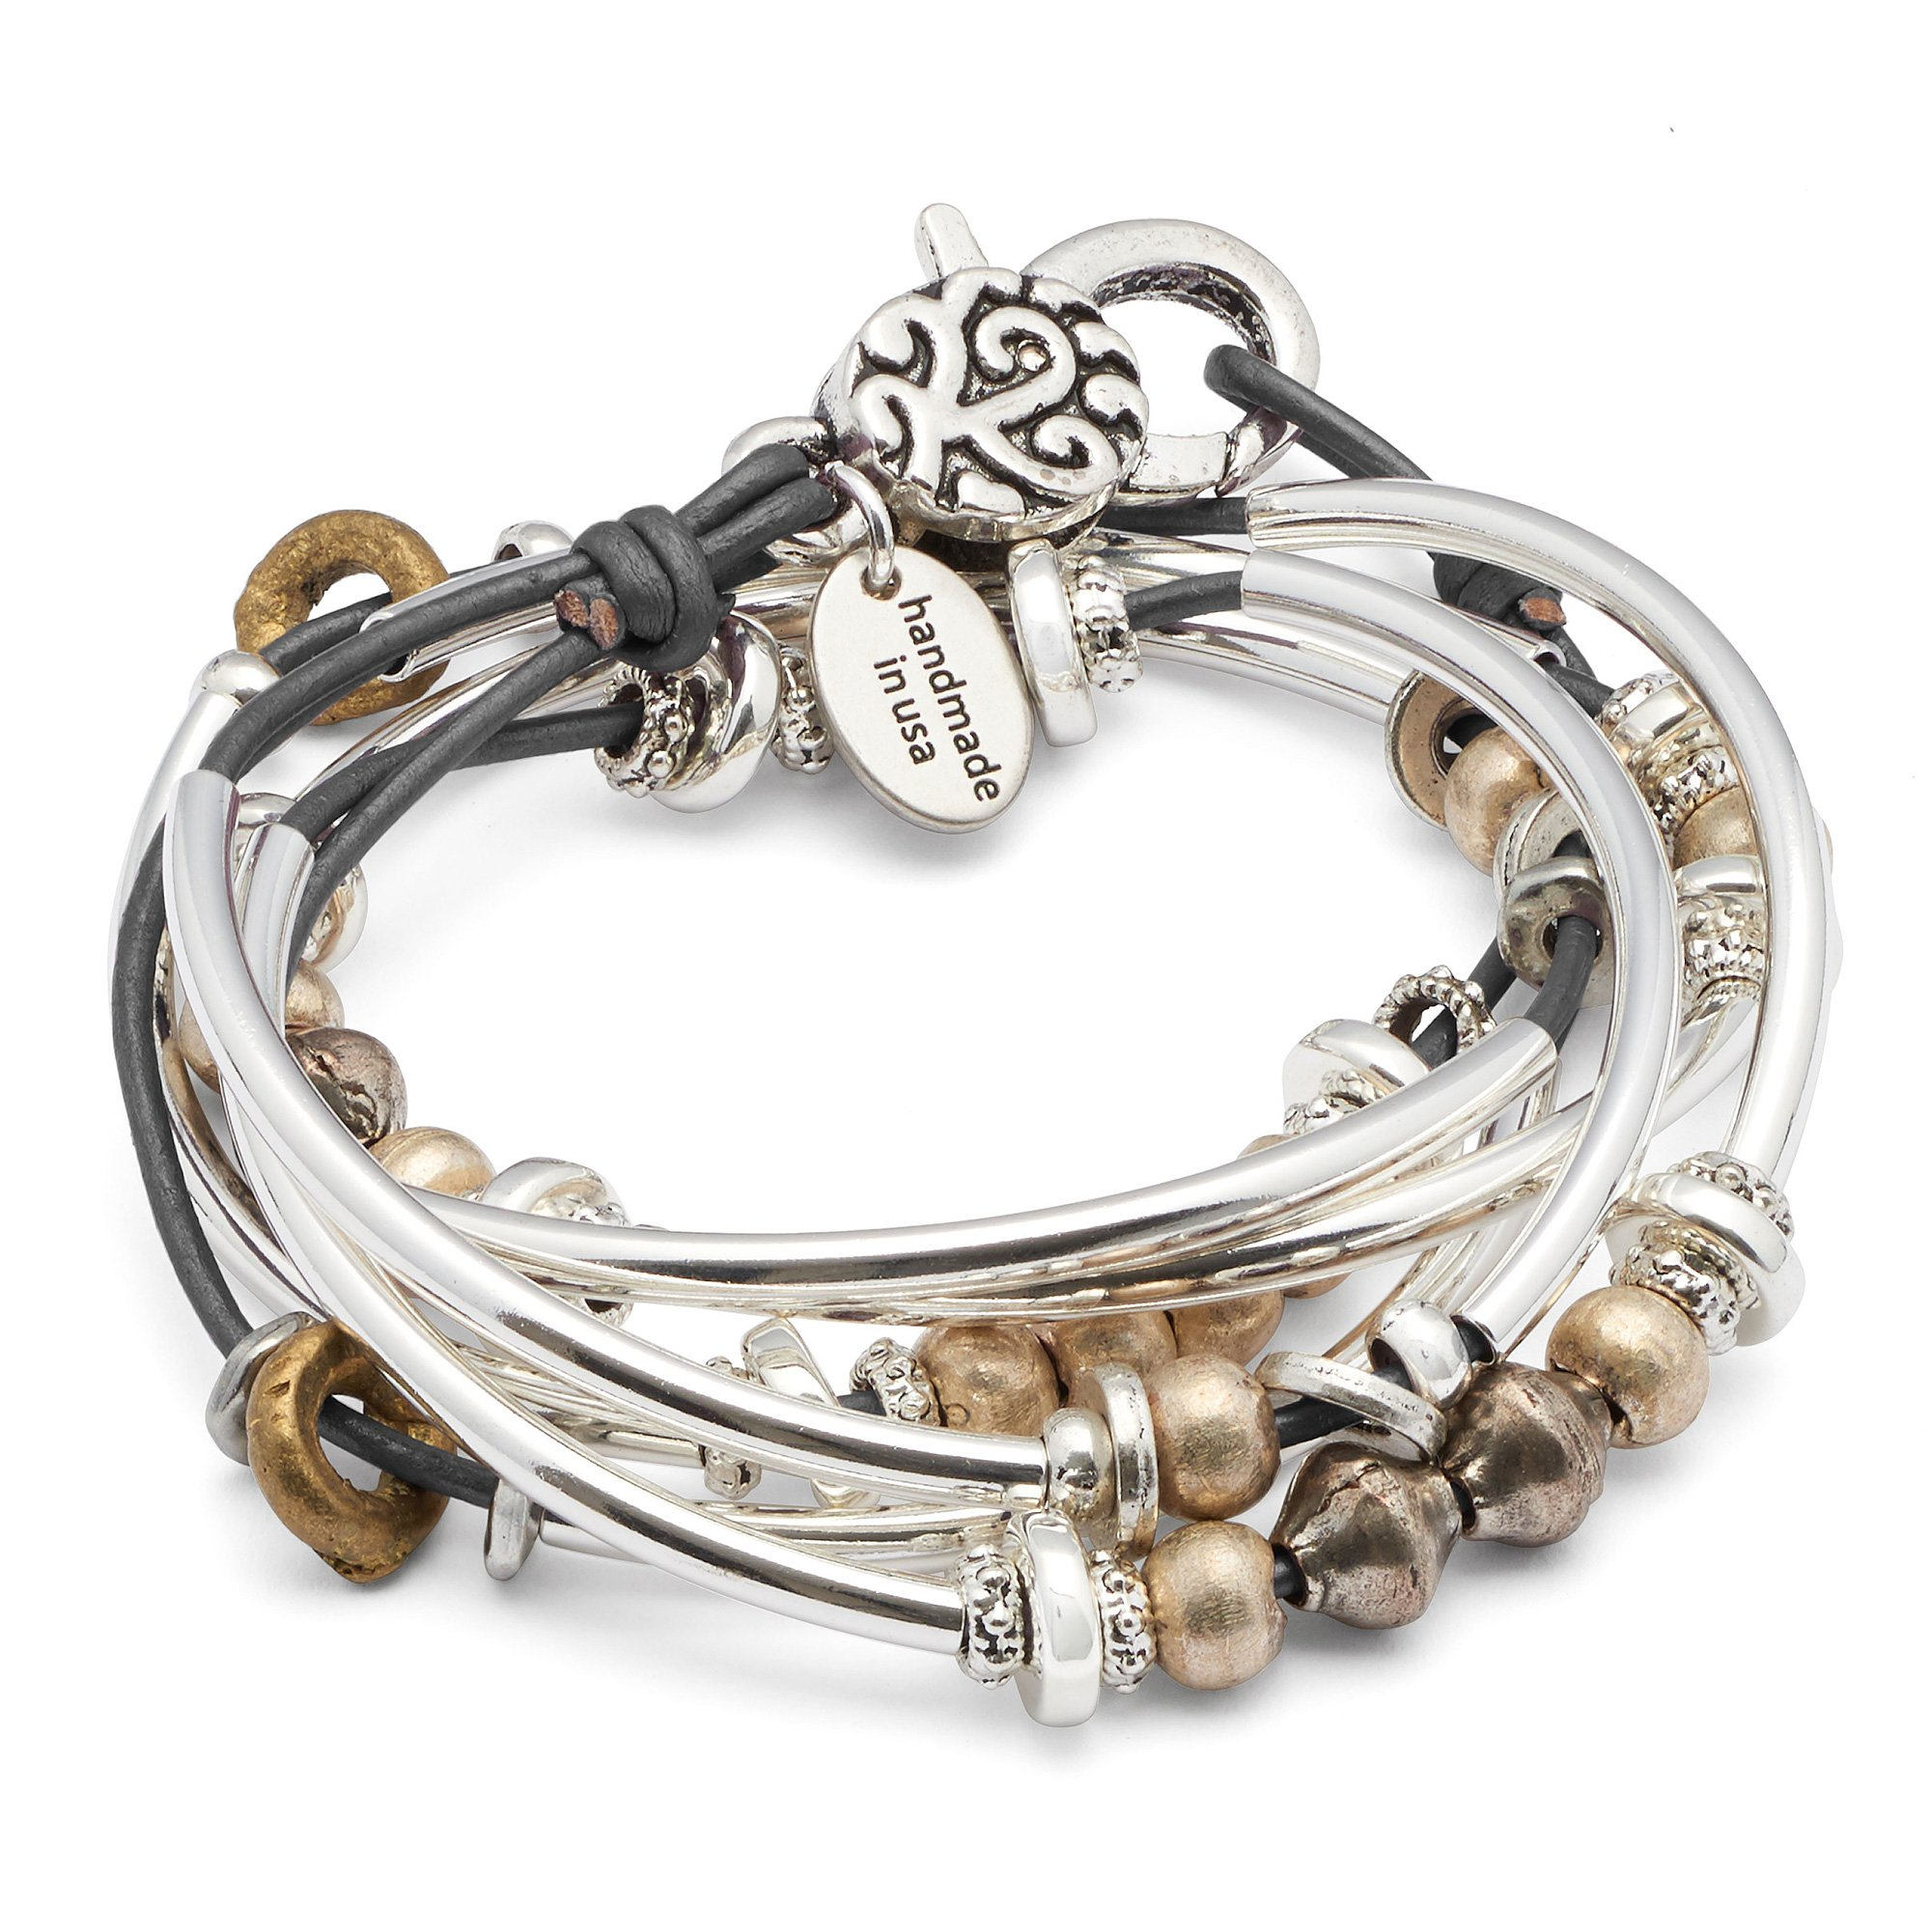 Lizzy James Bella Bracelet Necklace in Silver and Metallic Gunmetal Gray Leather by (MEDIUM)